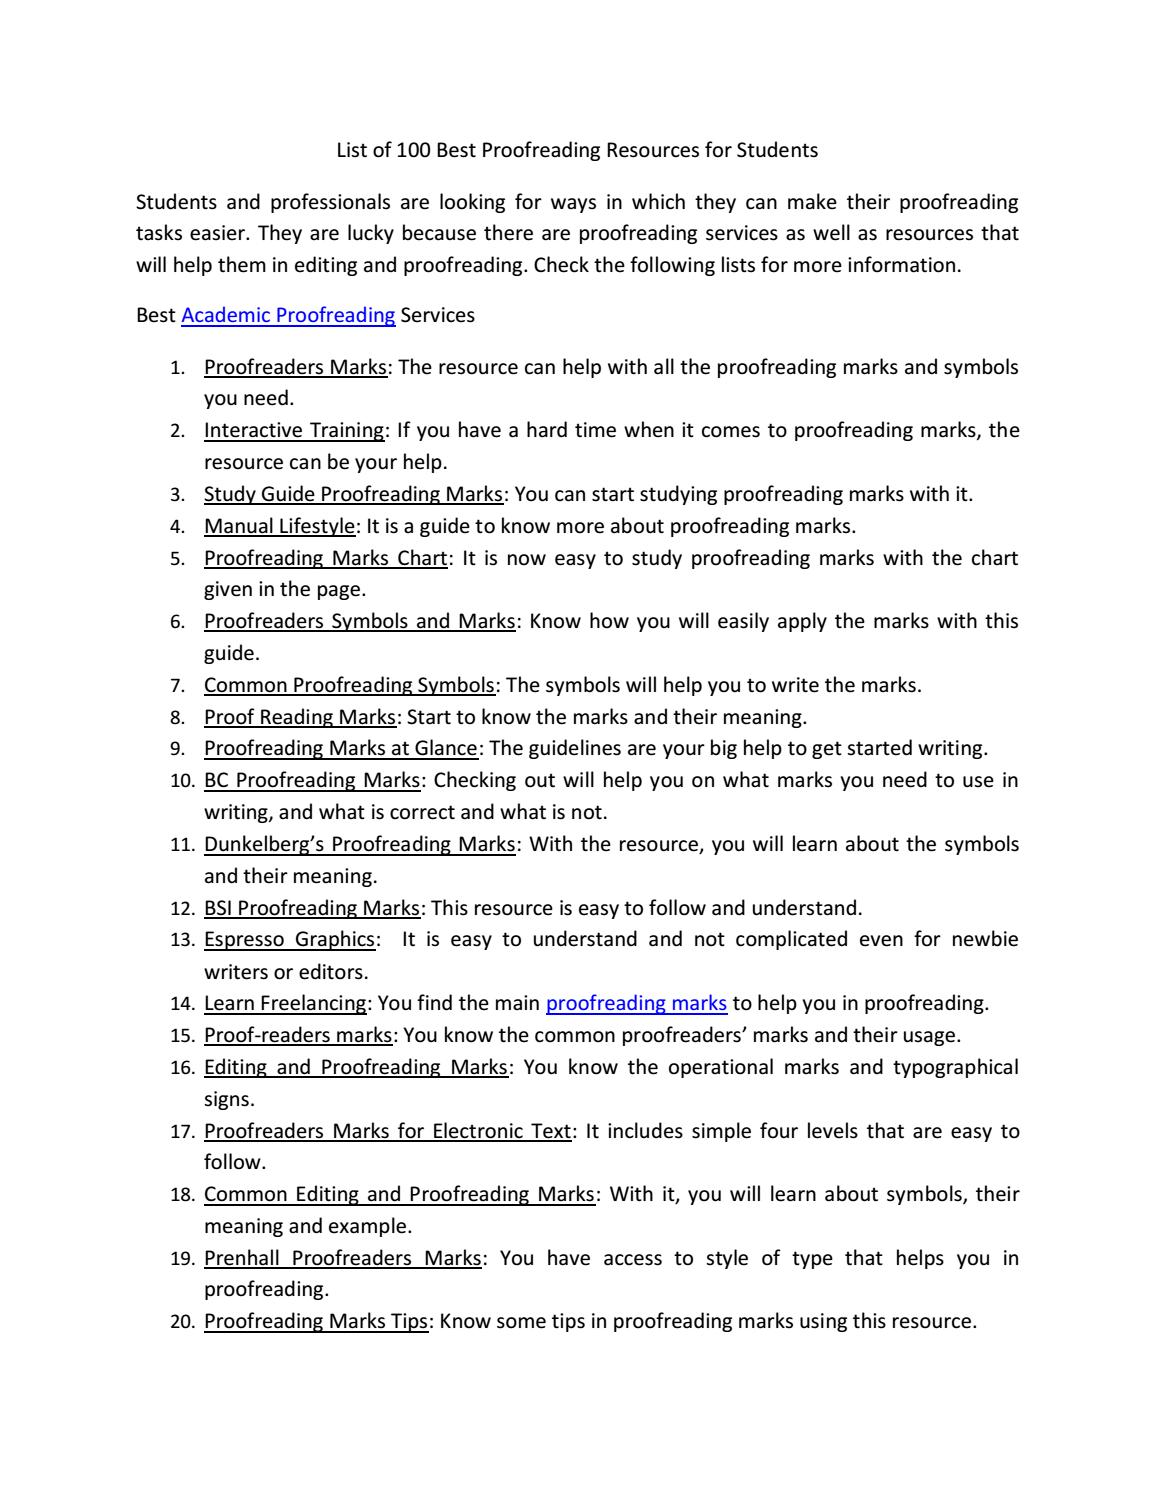 List of 100 best proofreading resources by academic proofreading list of 100 best proofreading resources by academic proofreading issuu biocorpaavc Choice Image